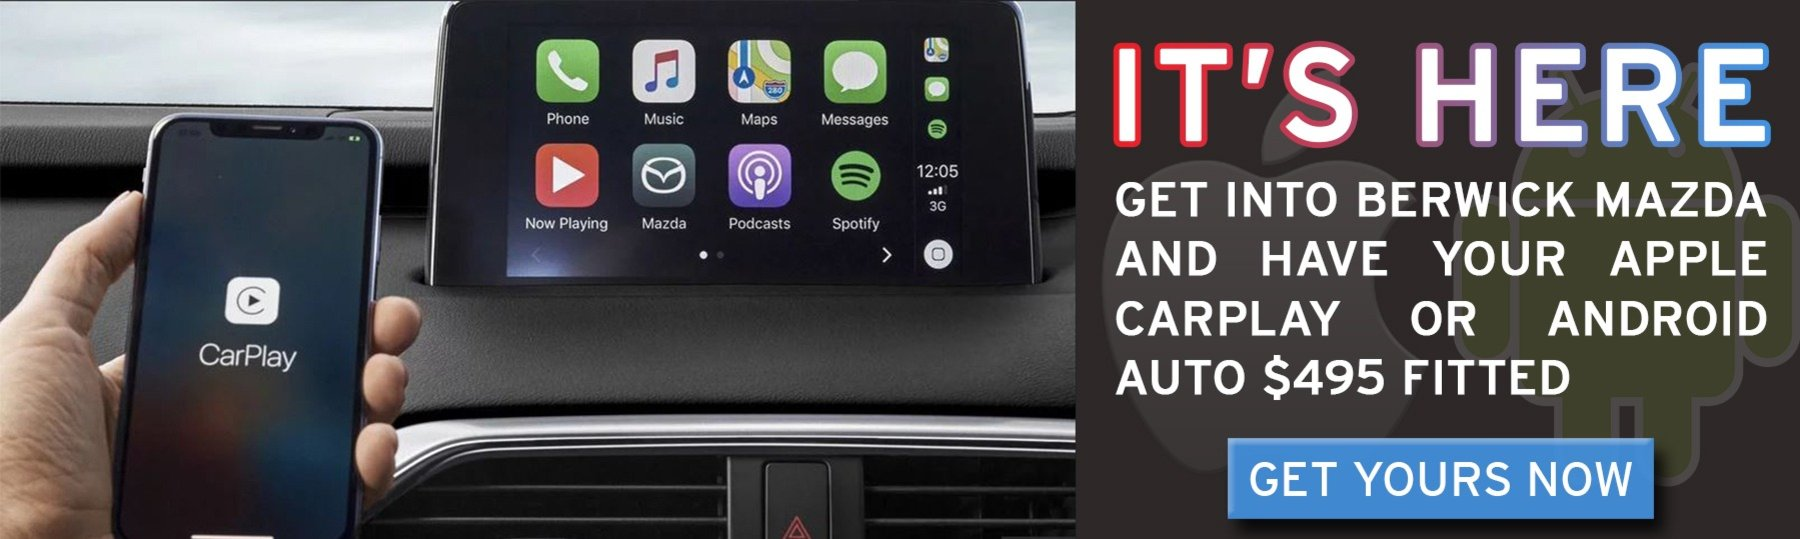 Berwick Mazda All New Apple car Play Android Auti